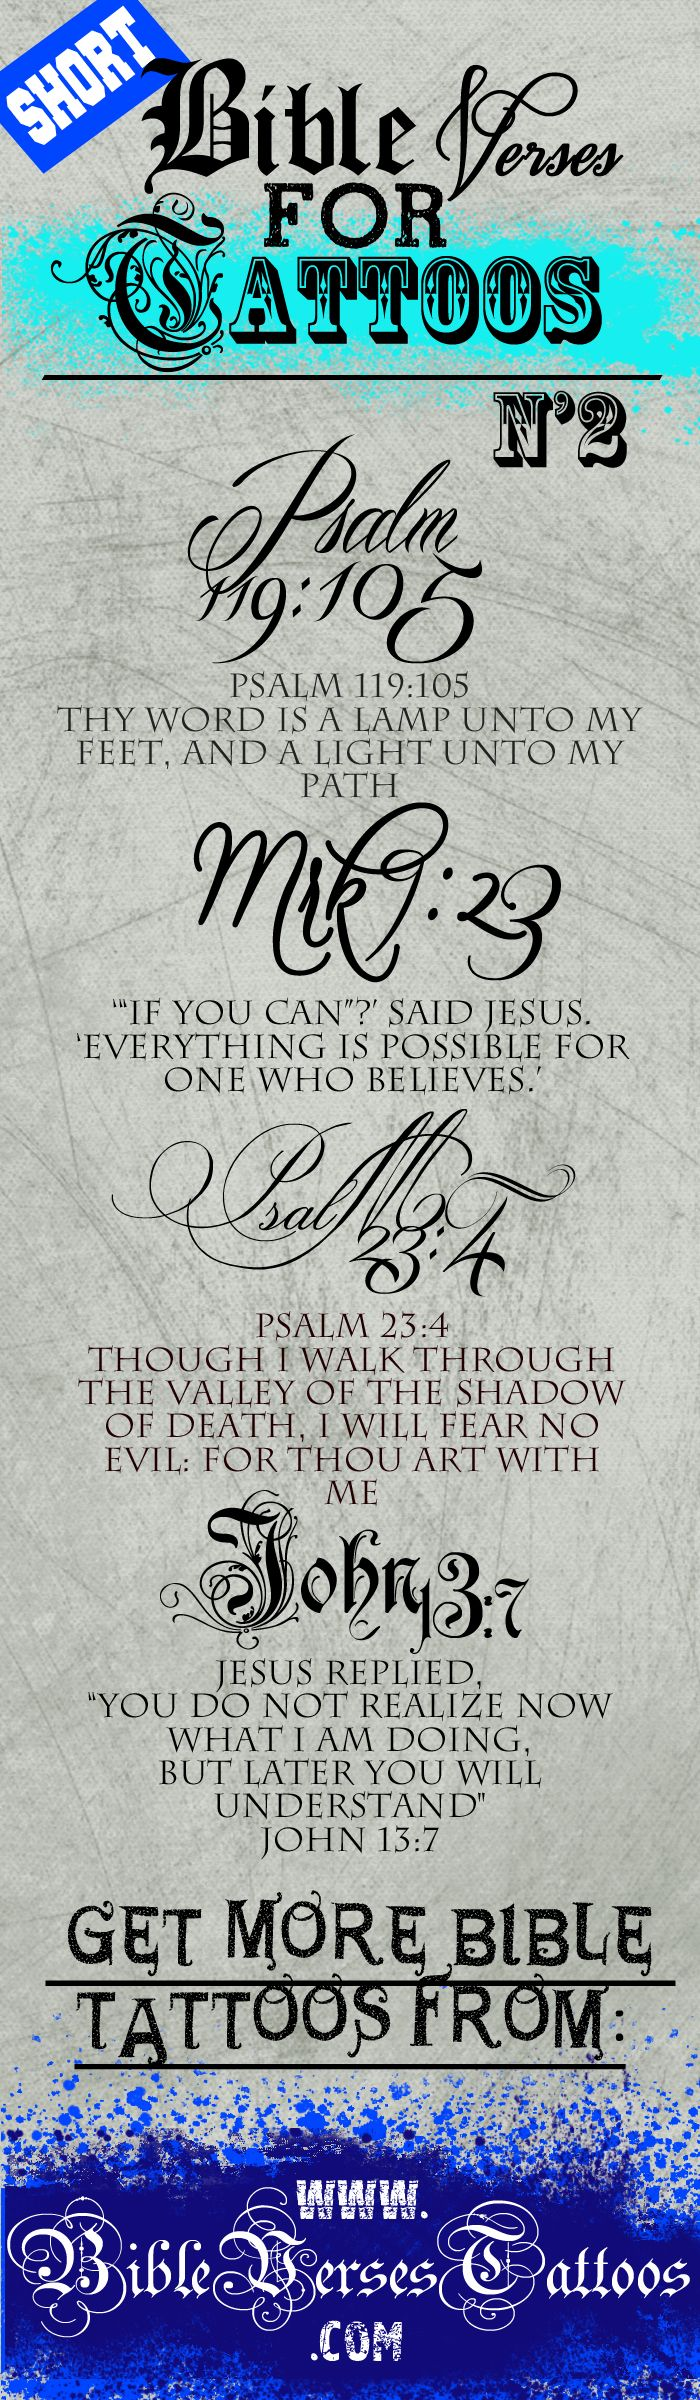 CLICK HERE to SEE TOP *SHORT* BIBLE VERSES TATTOOS